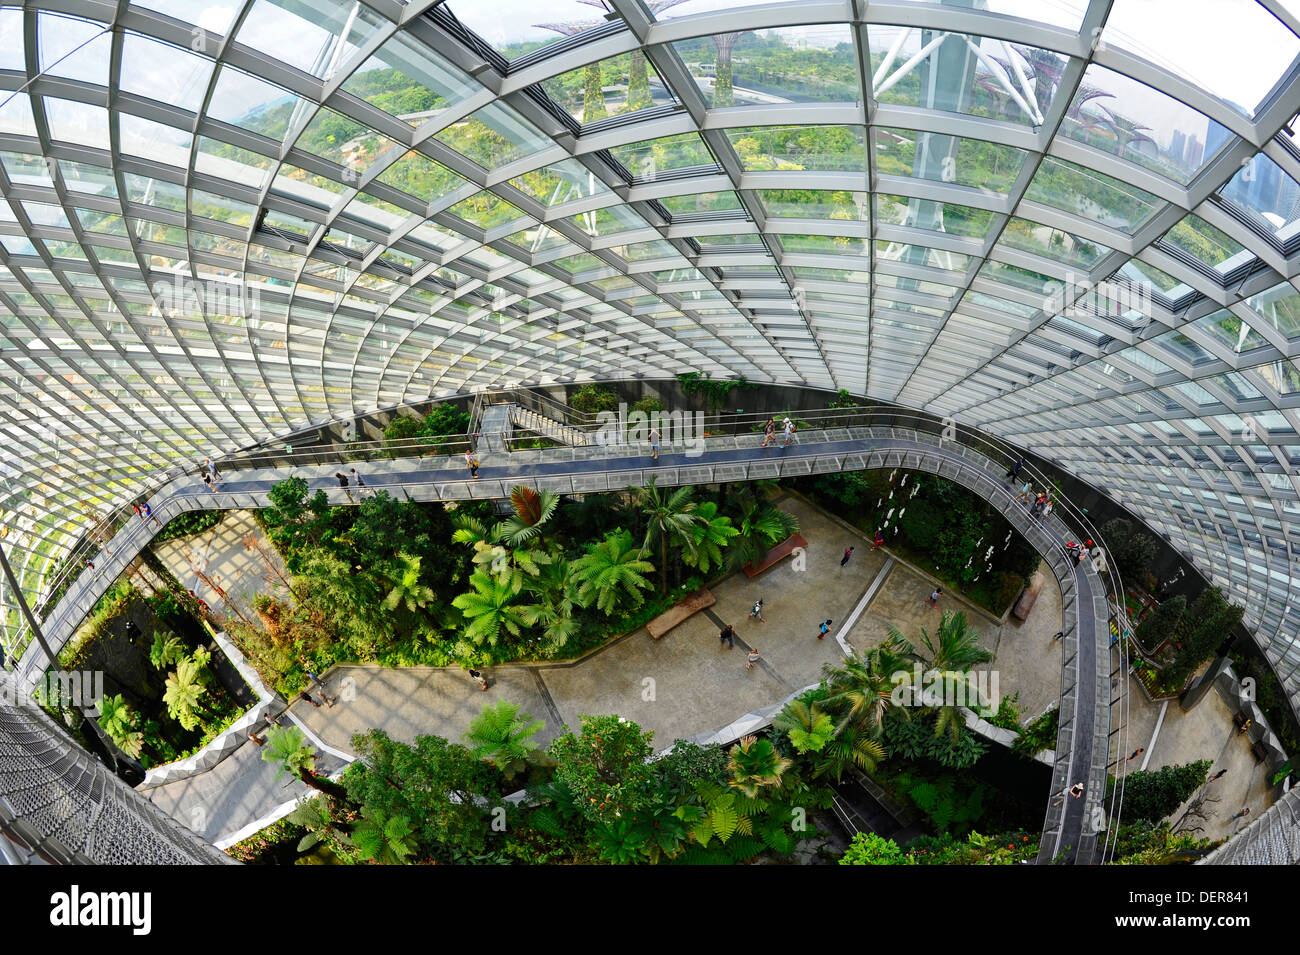 Indoor garten in singapur